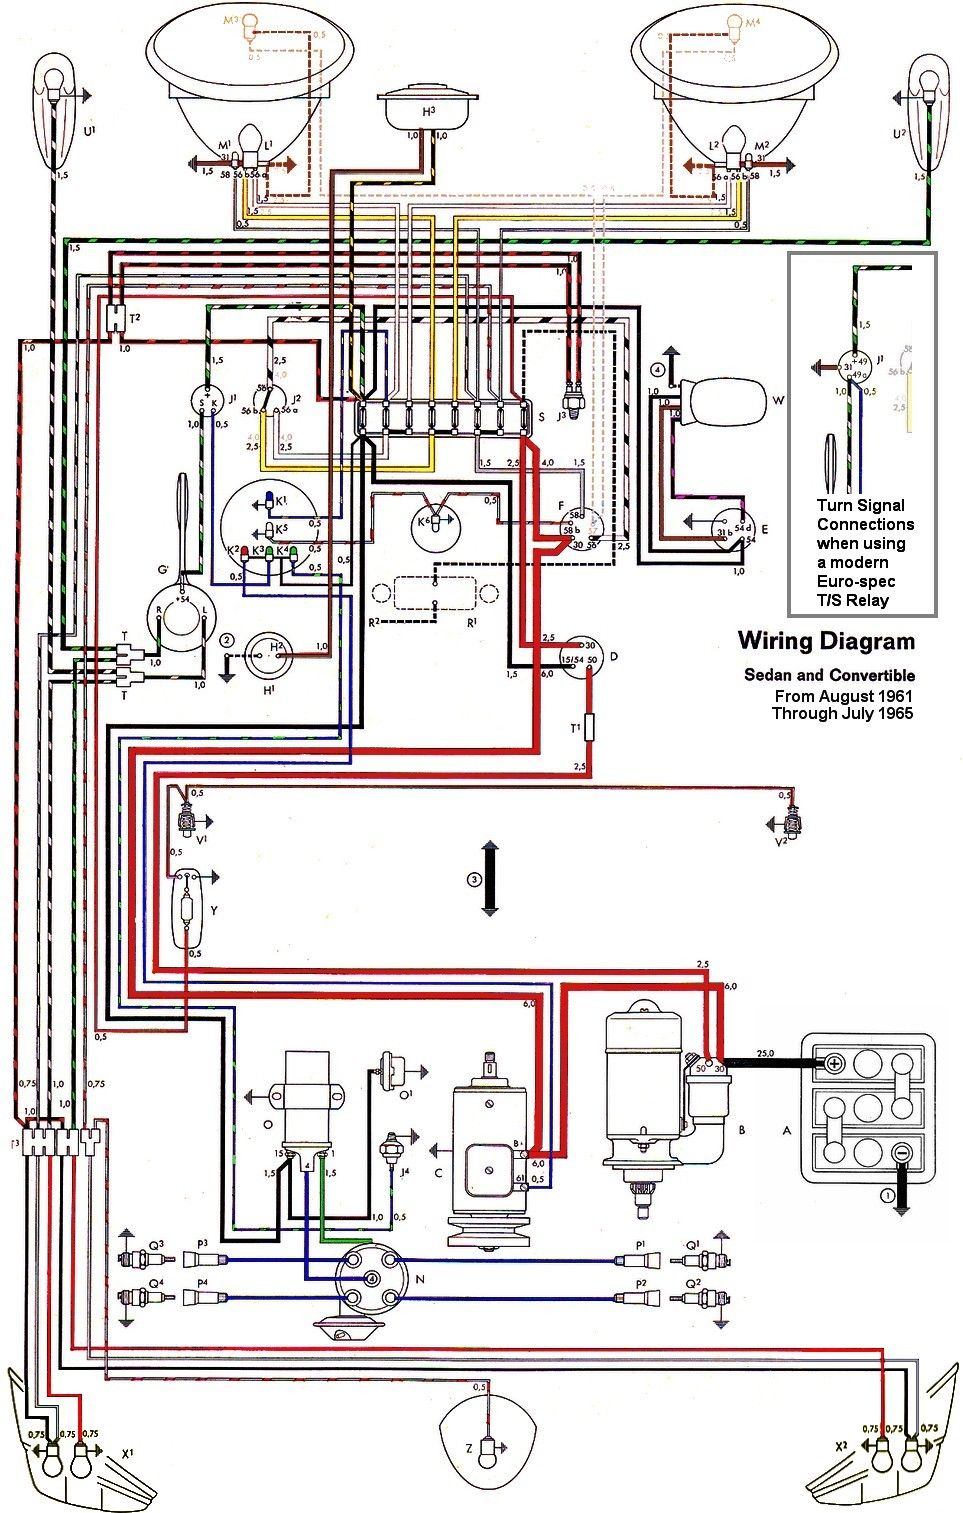 small resolution of wiring diagram vw beetle sedan and convertible 1961 1965 vw volkswagen amp meter wiring diagram volkswagen wiring diagram